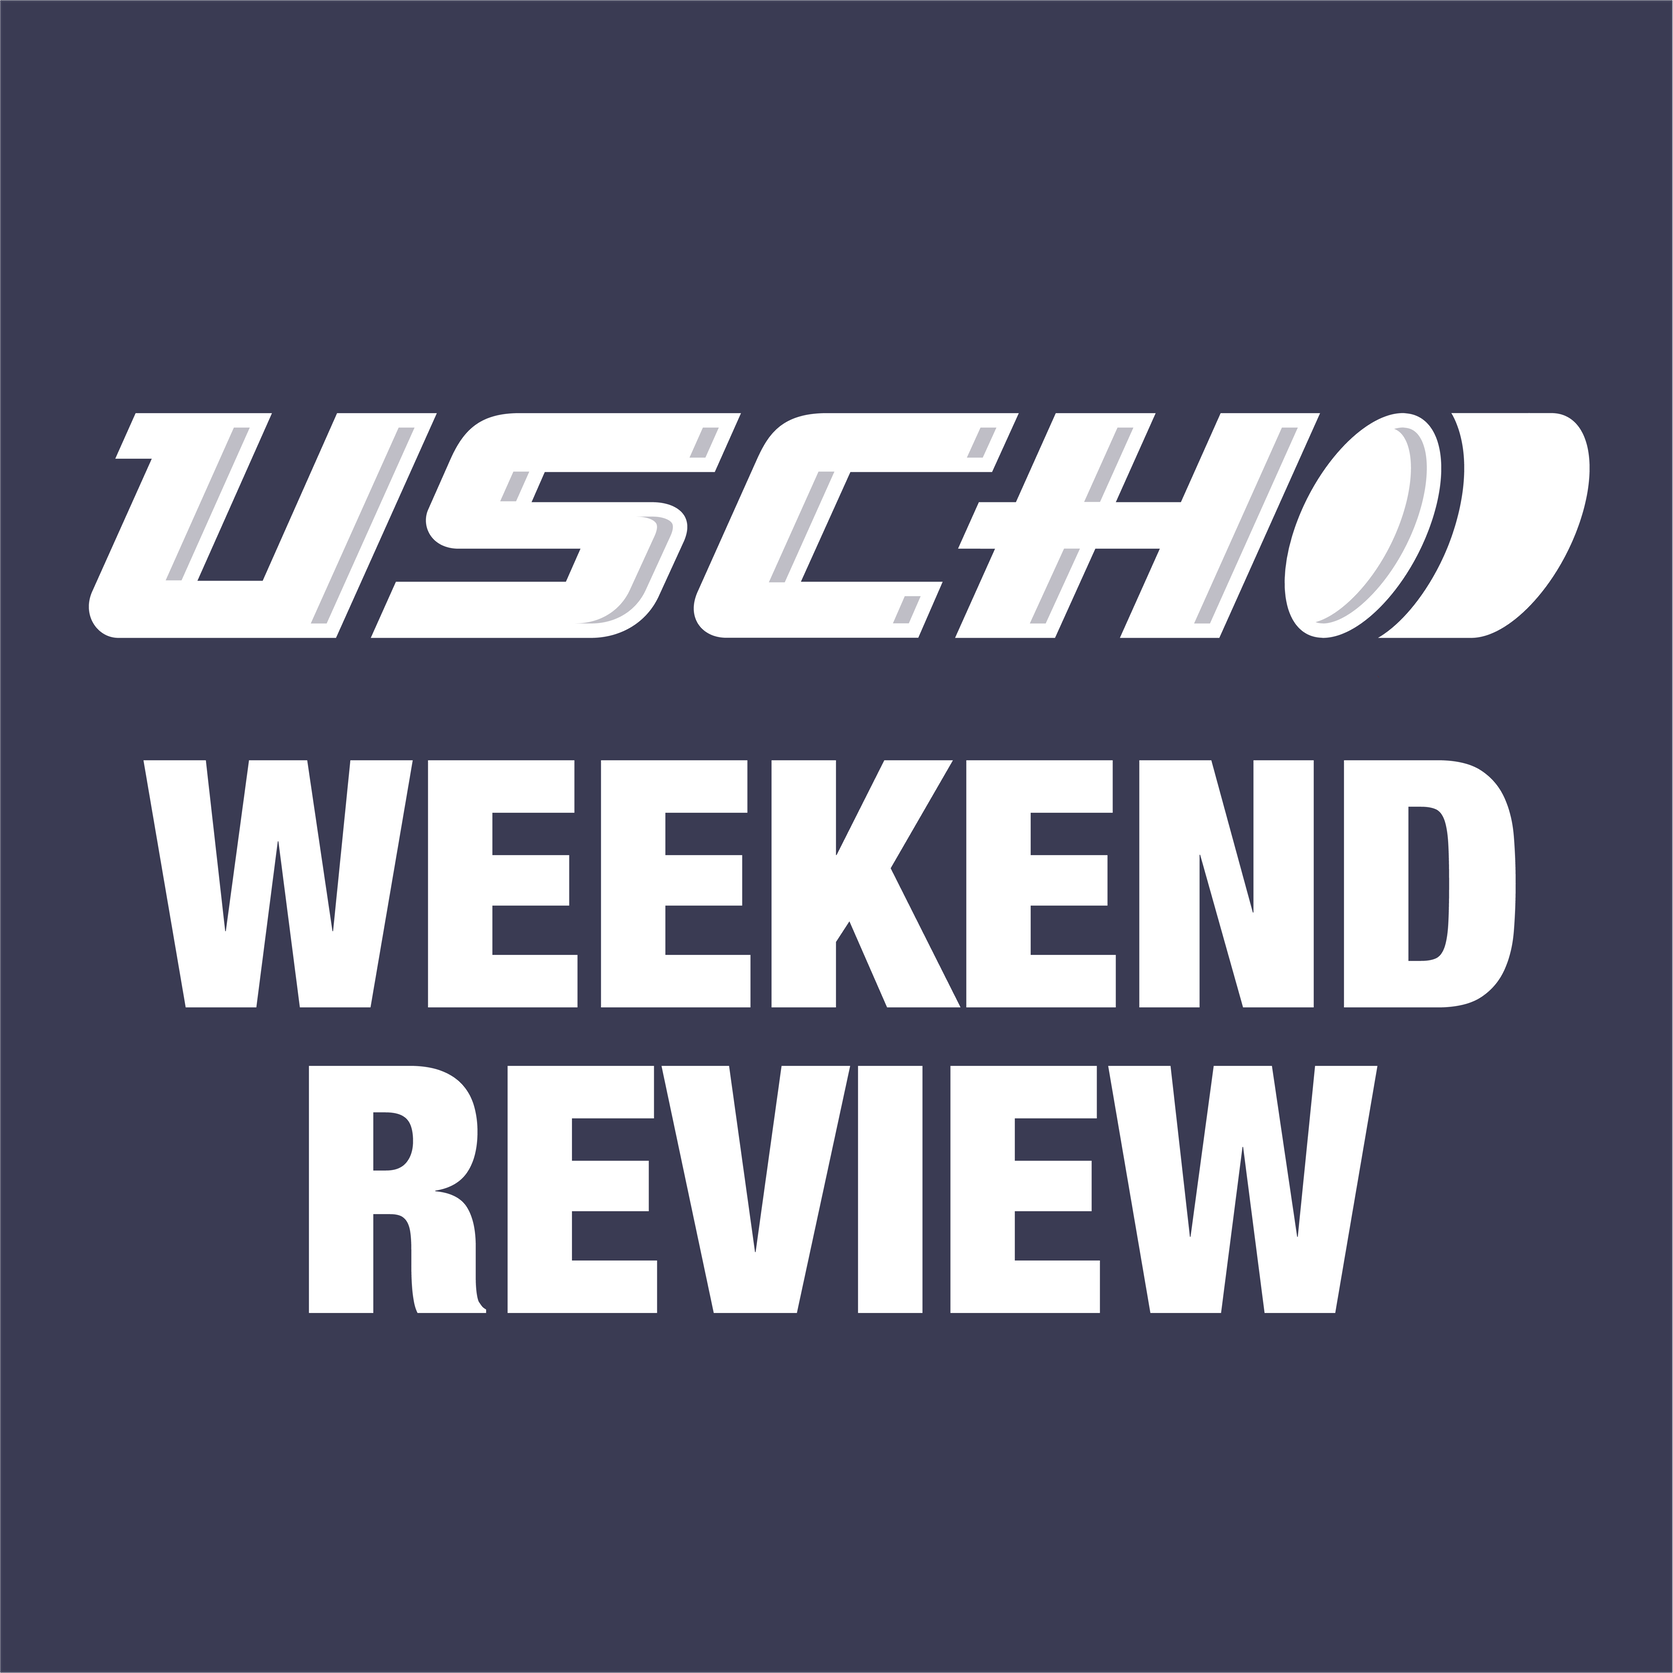 BGSU gets 5 of 6 points, Omaha gains split with North Dakota, UMass, BC defeat each other on the road: Weekend Review podcast Season 2 Episode 14